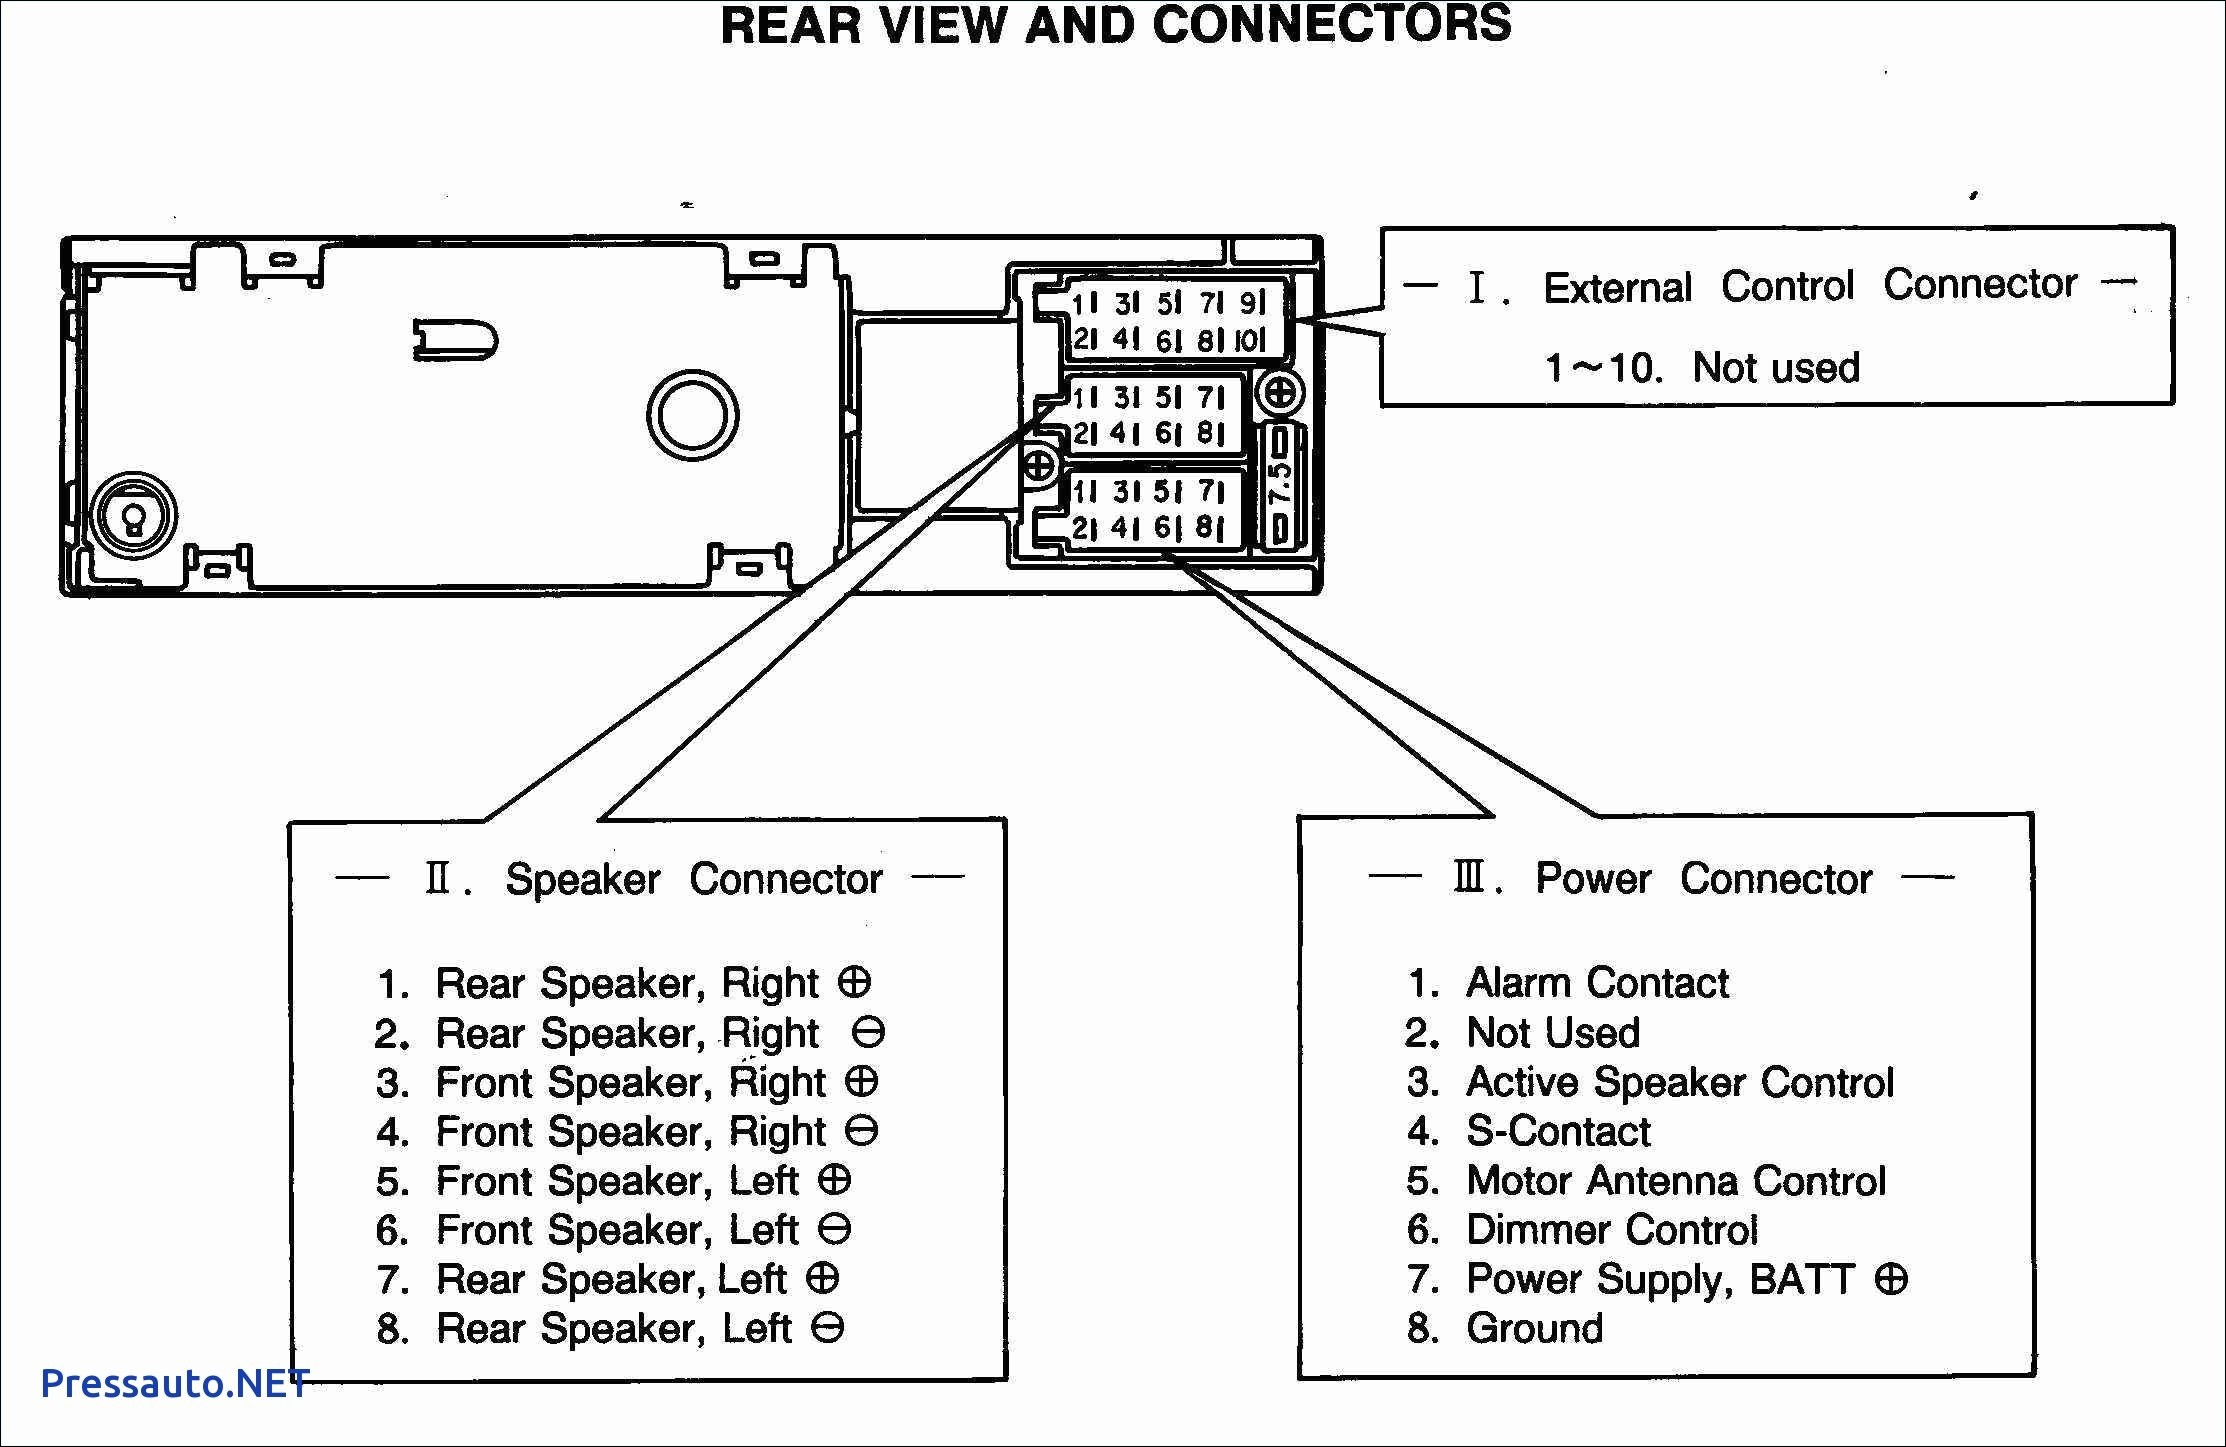 2005 jeep wrangler radio wiring diagram yh 7491  2005 jeep grand cherokee stereo wiring harness wiring diagram  2005 jeep grand cherokee stereo wiring